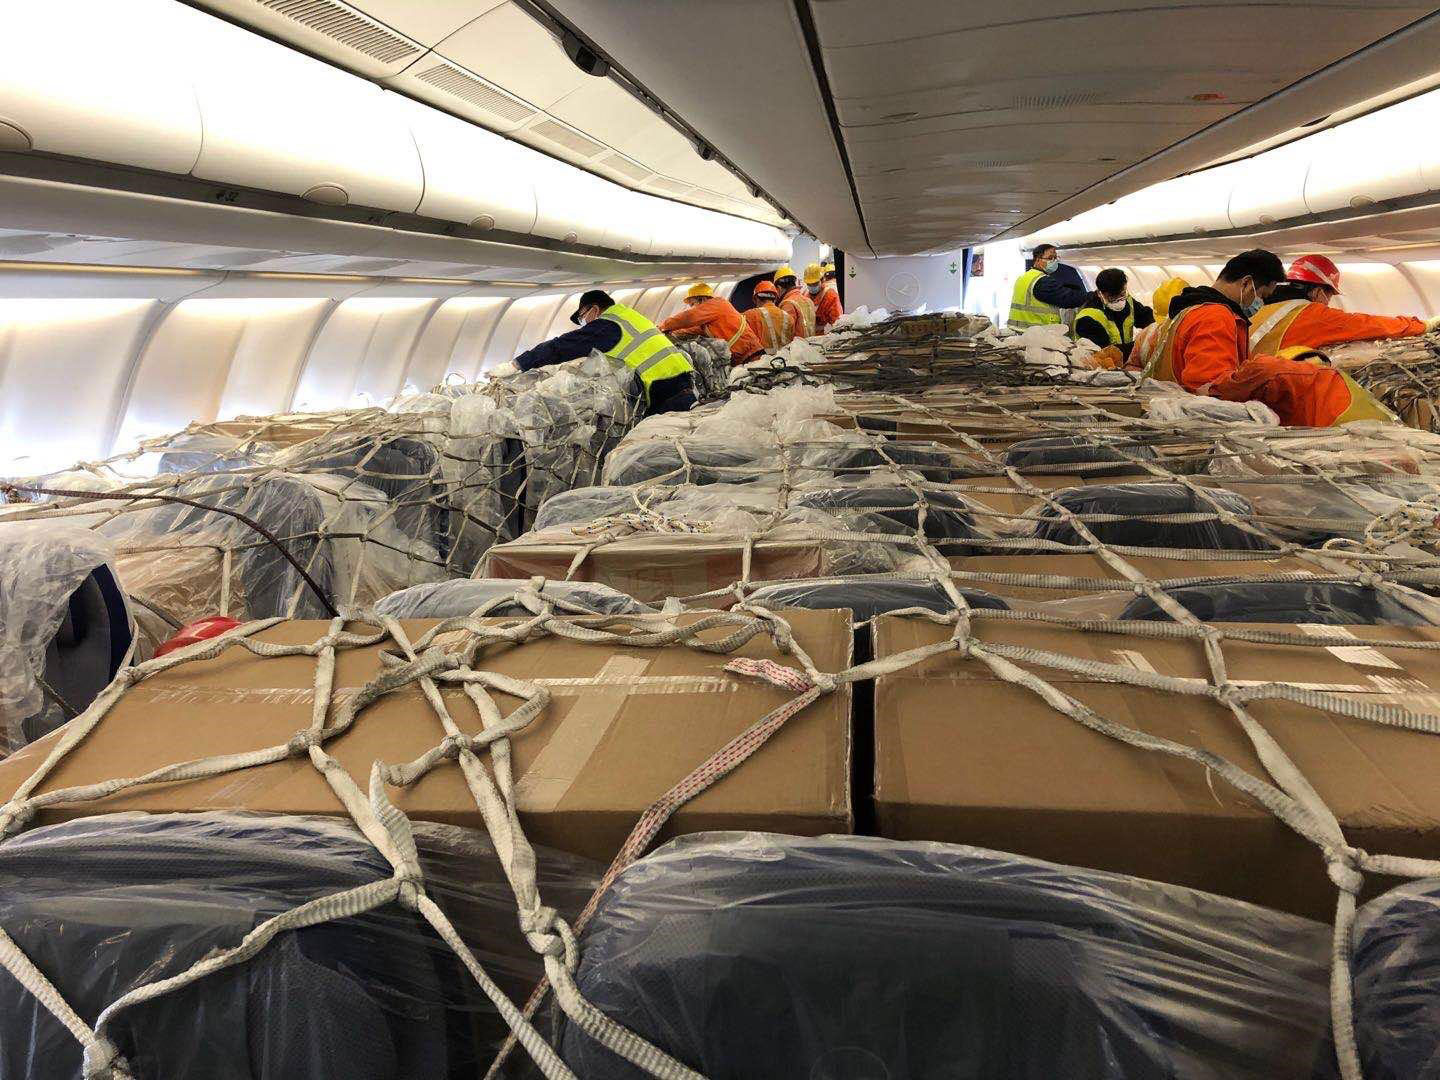 Lufthansa's Airbus A330 passenger aircraft loaded with 30 tonnes of medical goods was transported from Shanghai to Frankfurt